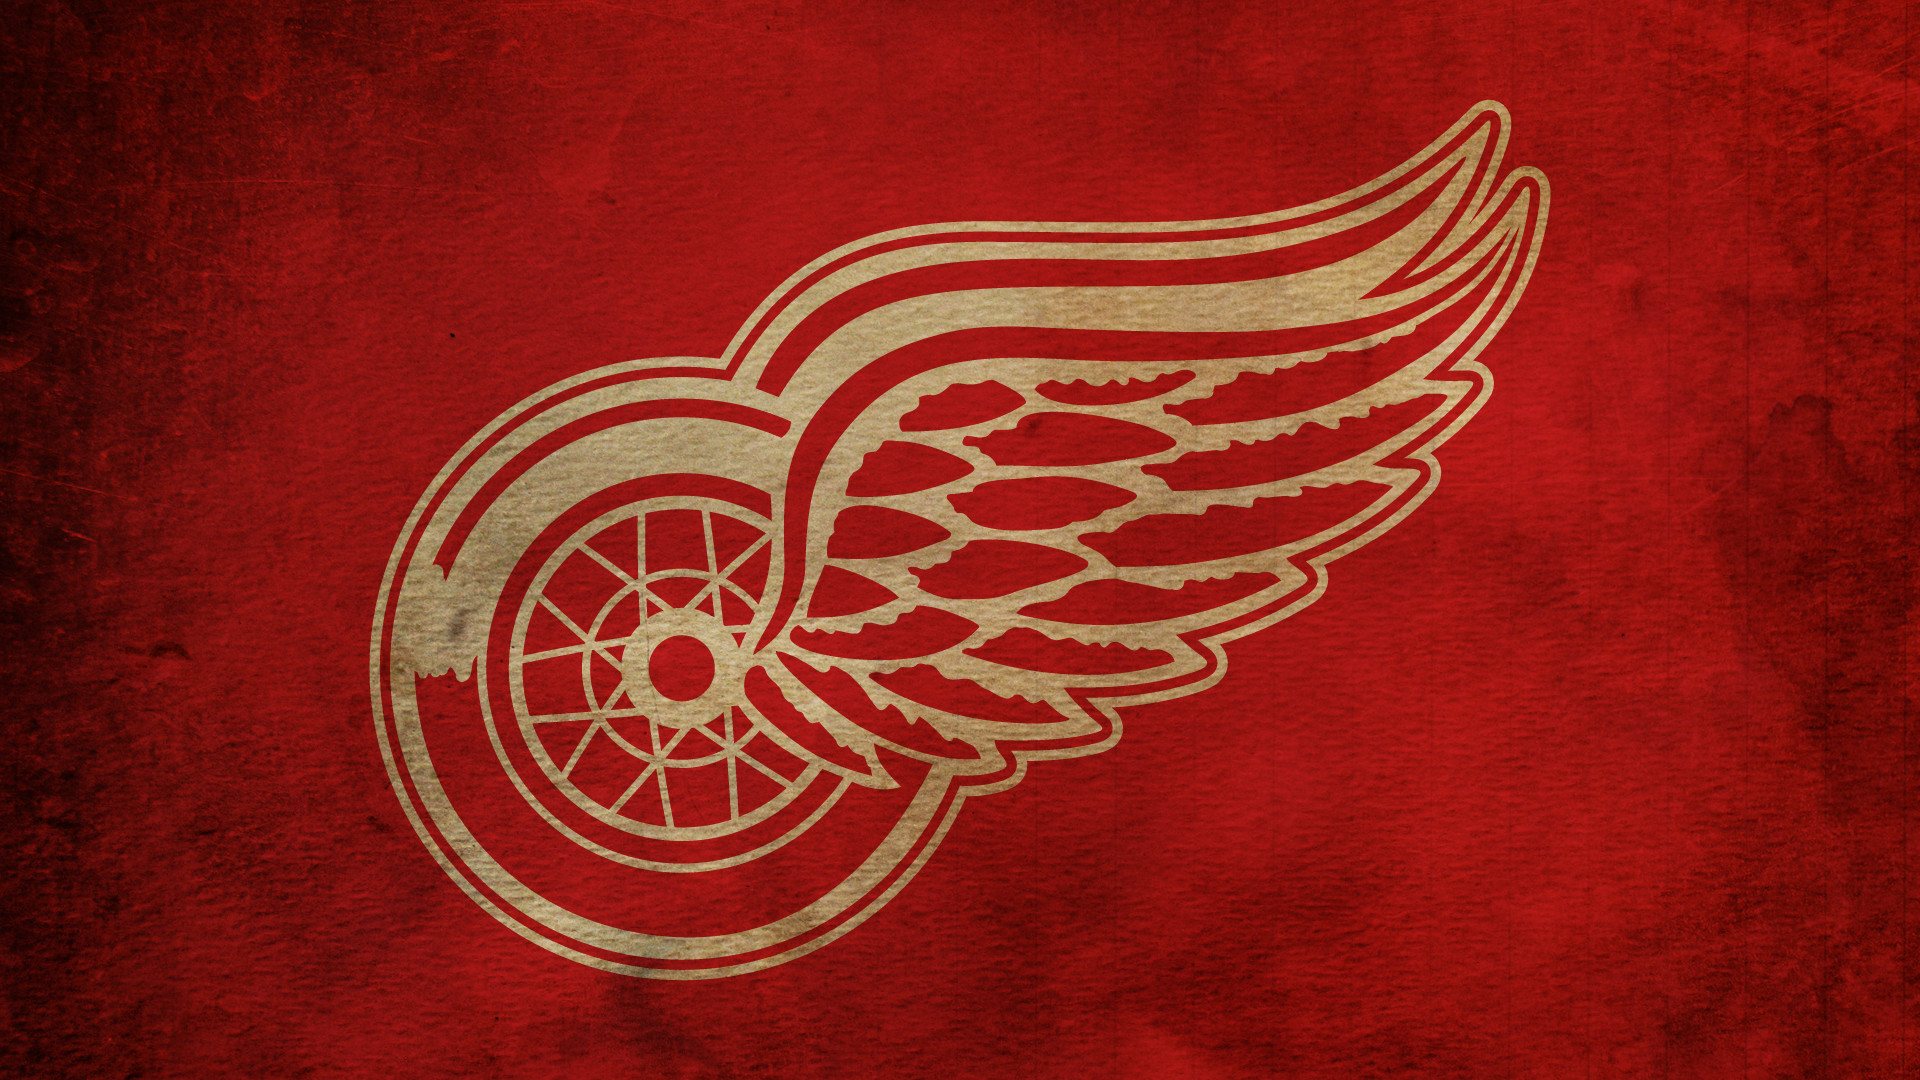 1920x1080 Sports - Detroit Red Wings Wallpaper